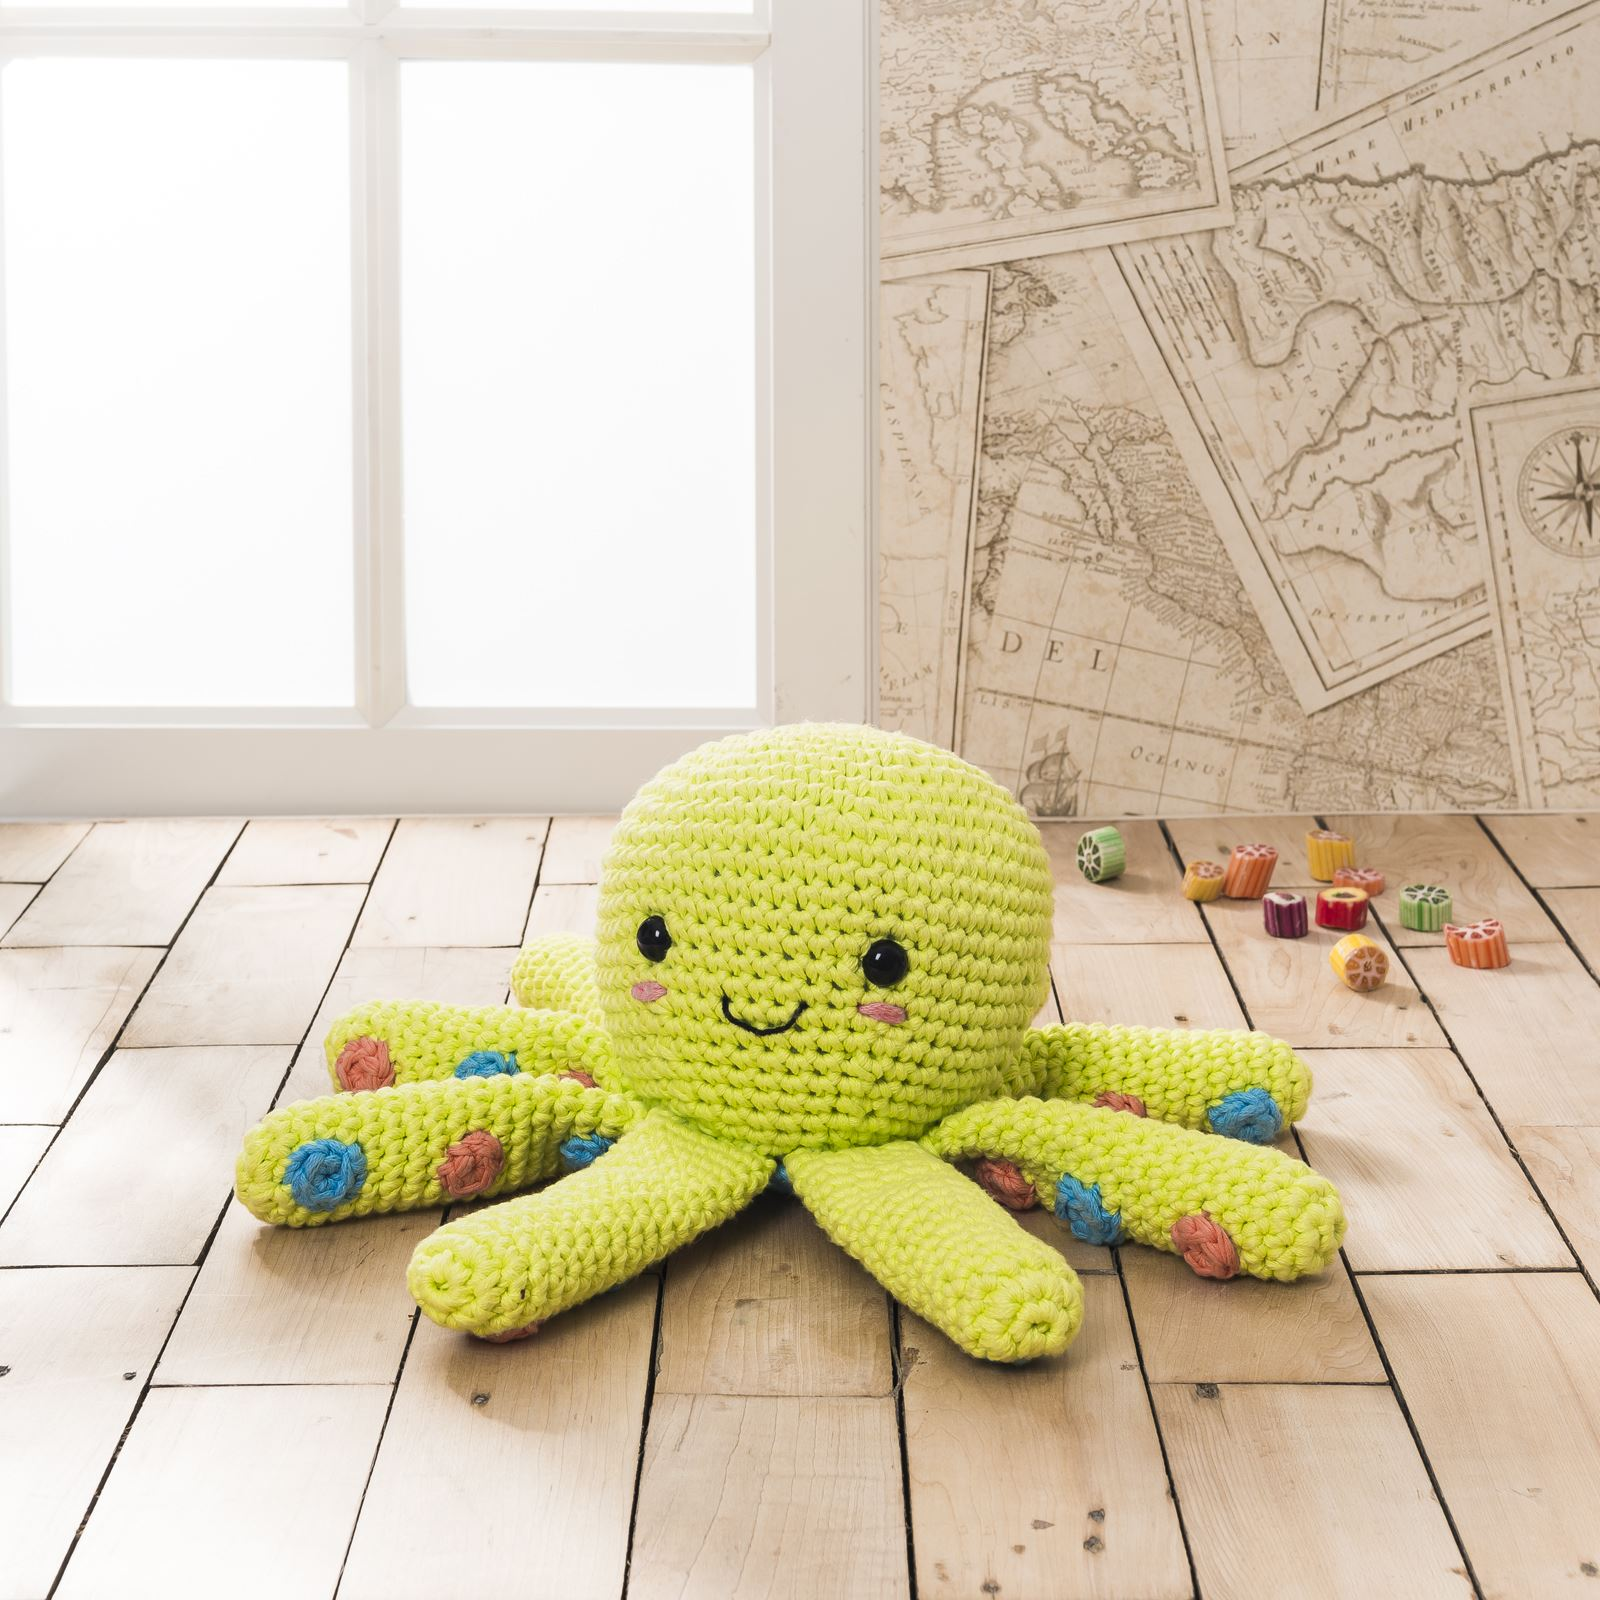 DMC Natura XL Yummy Crochet Patterns Amigurumi Home Decor ...